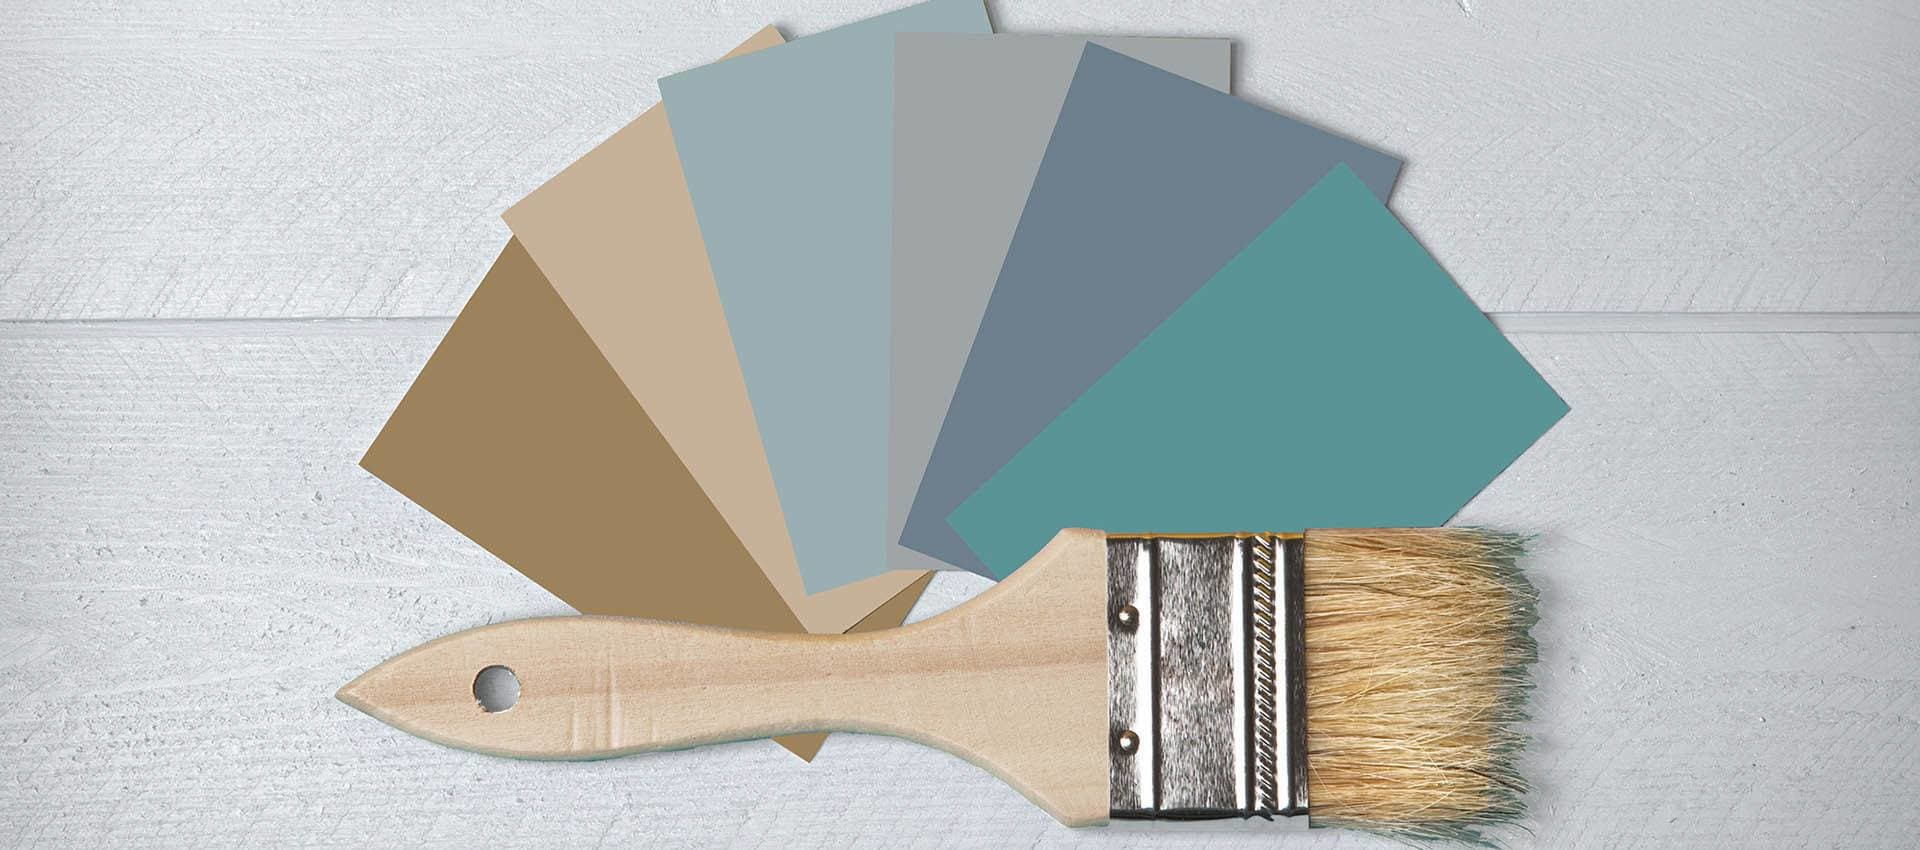 Paint Swatches at Sandpiper Village Apartment Homes in Vacaville